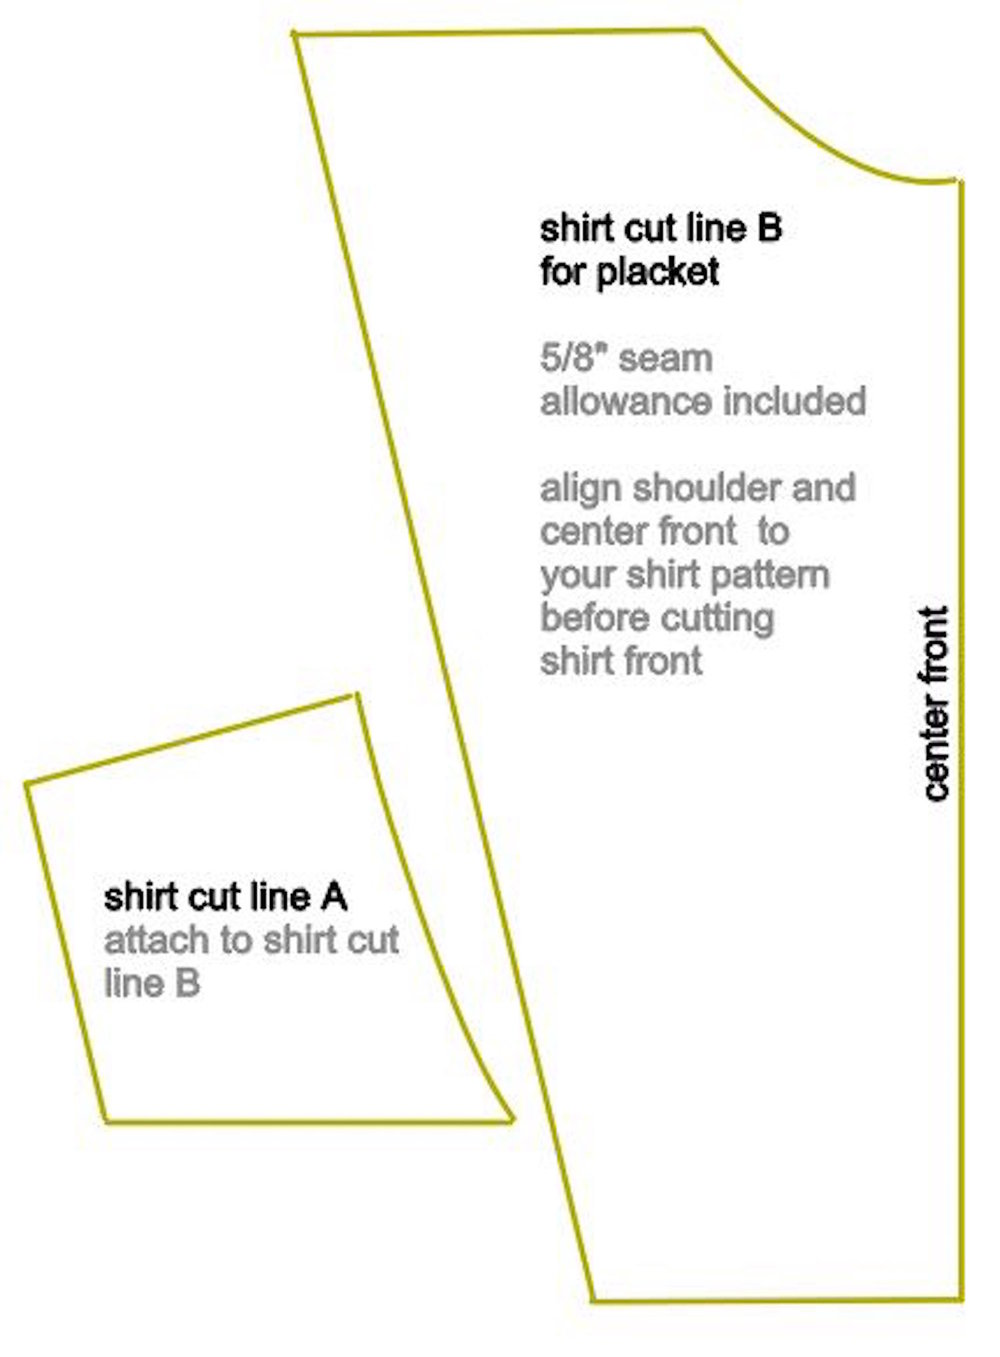 step 1 - Print out the template pieces for the shirt Cut Line and the Placket.  Each is in two pieces. Tape them together.